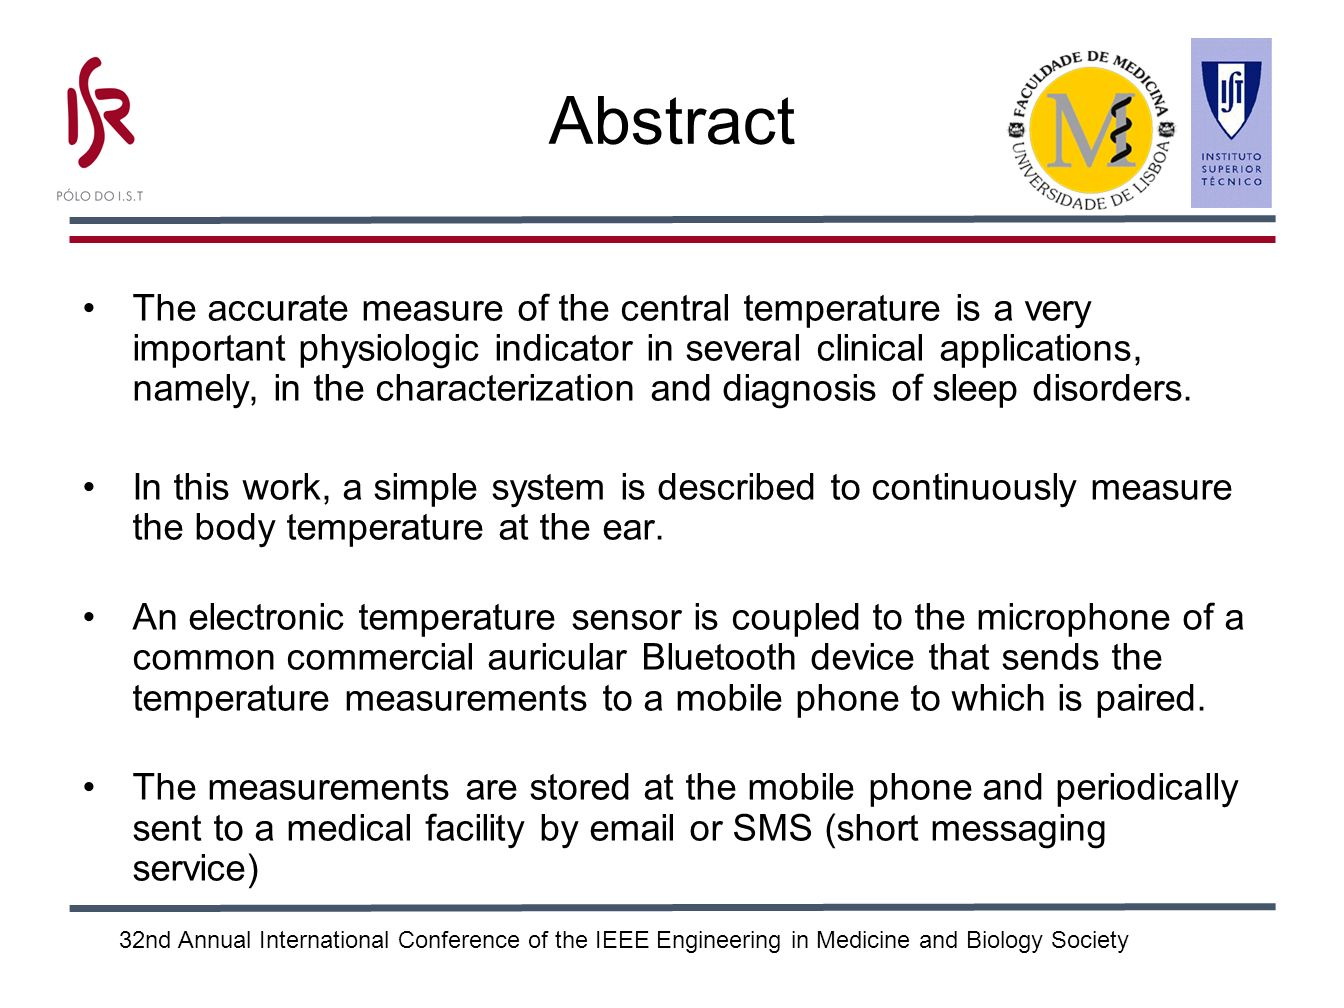 32nd Annual International Conference of the IEEE Engineering in Medicine and Biology Society Abstract The accurate measure of the central temperature